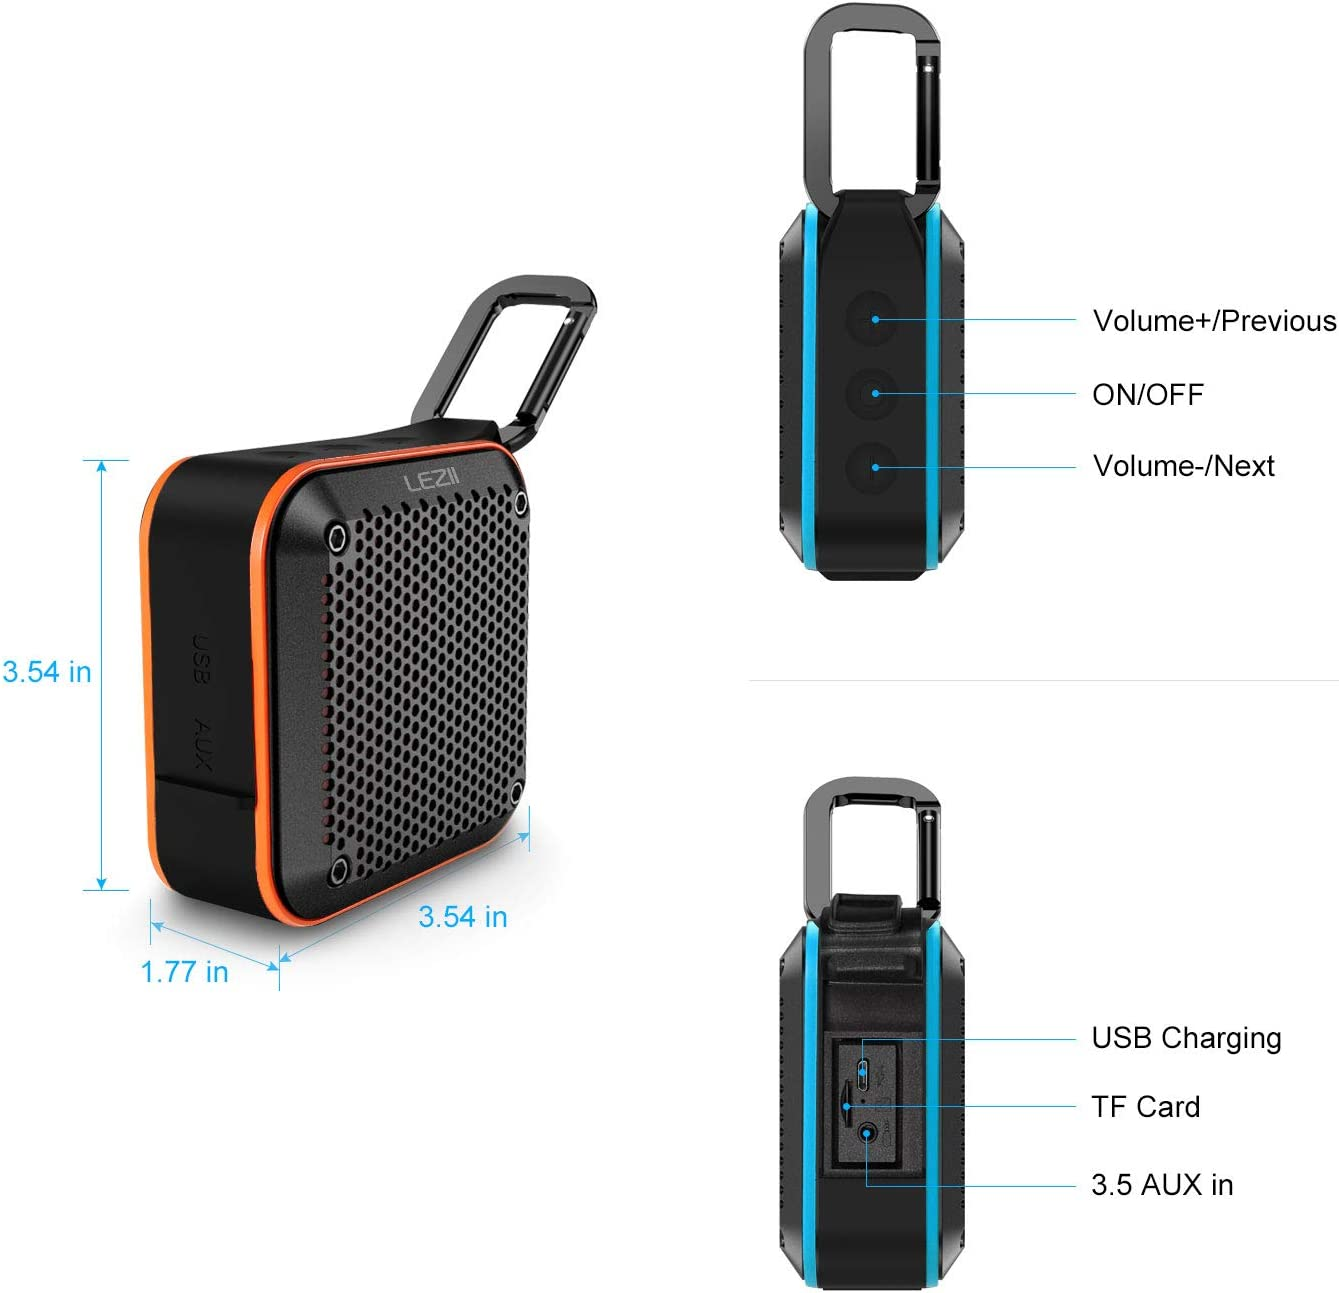 12h Playtime 10W Bass Sound Small Portable Wireless Speakers LEZII IPX8 Waterproof Bluetooth Speaker Floating Speaker for Shower Beach Pool Party